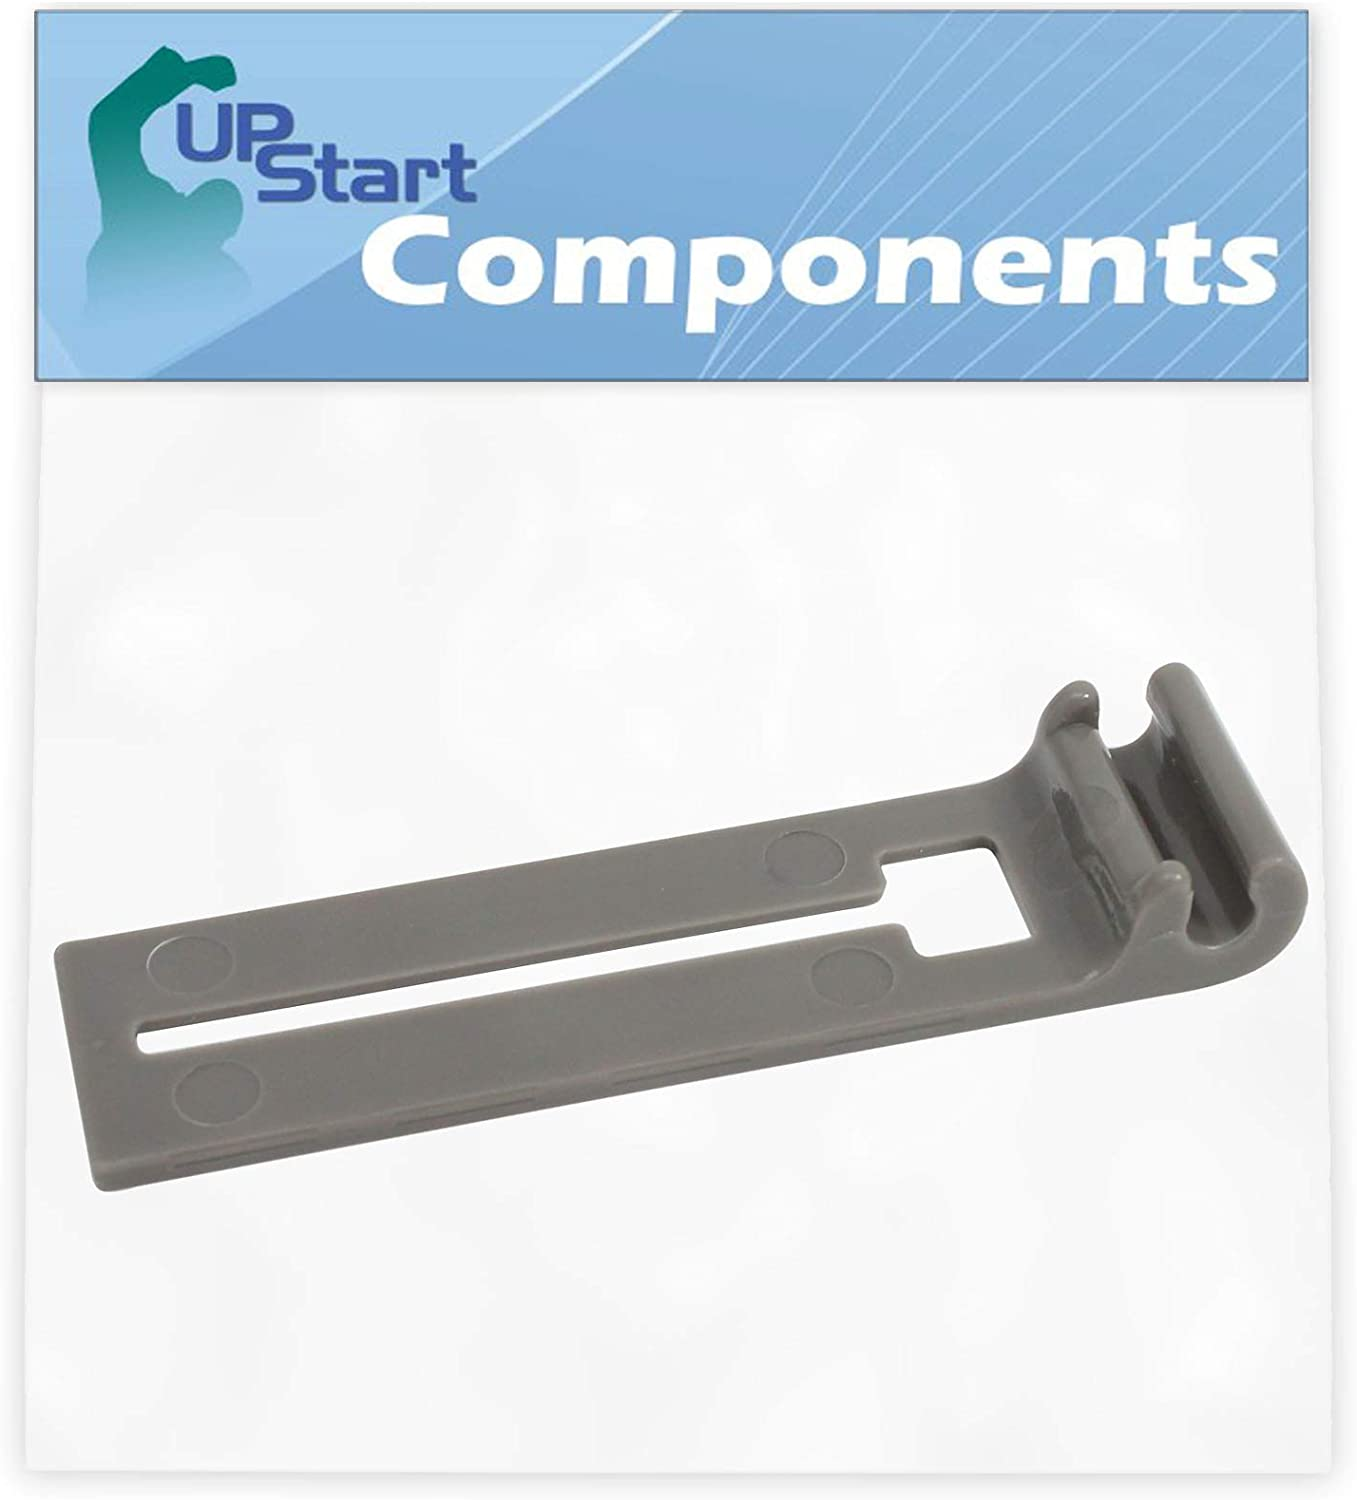 W10195839 Dishwasher Rack Adjuster Replacement for Maytag MDB8959SFE2 Dishwasher - Compatible with WPW10195839 Adjuster